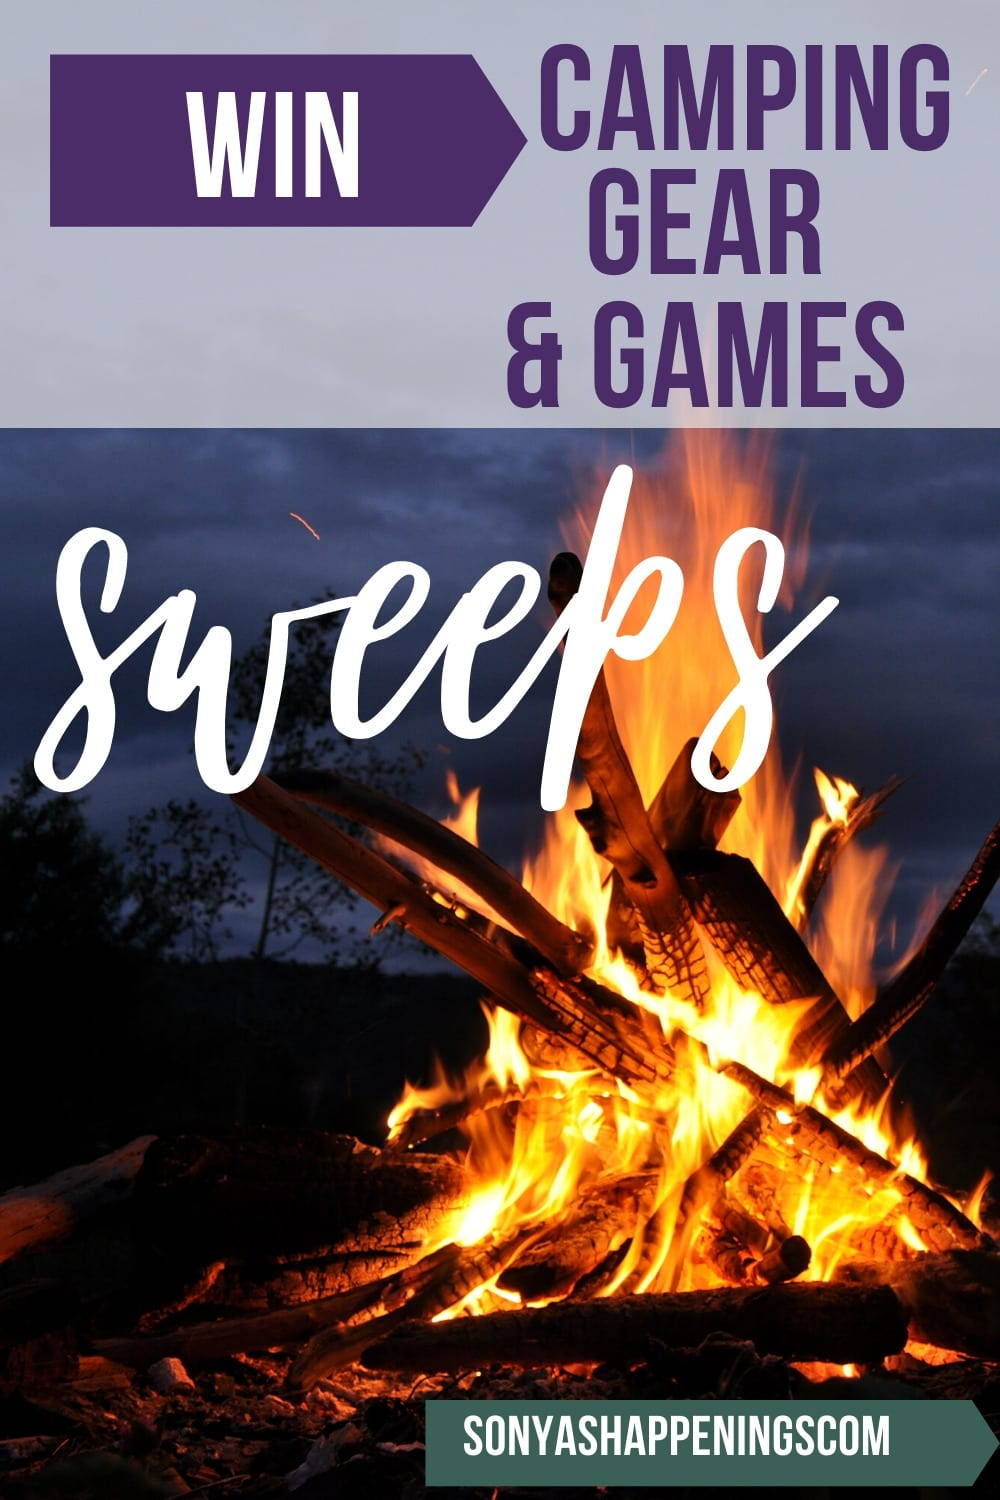 Win $1,000 in Family Camping Gear and Games